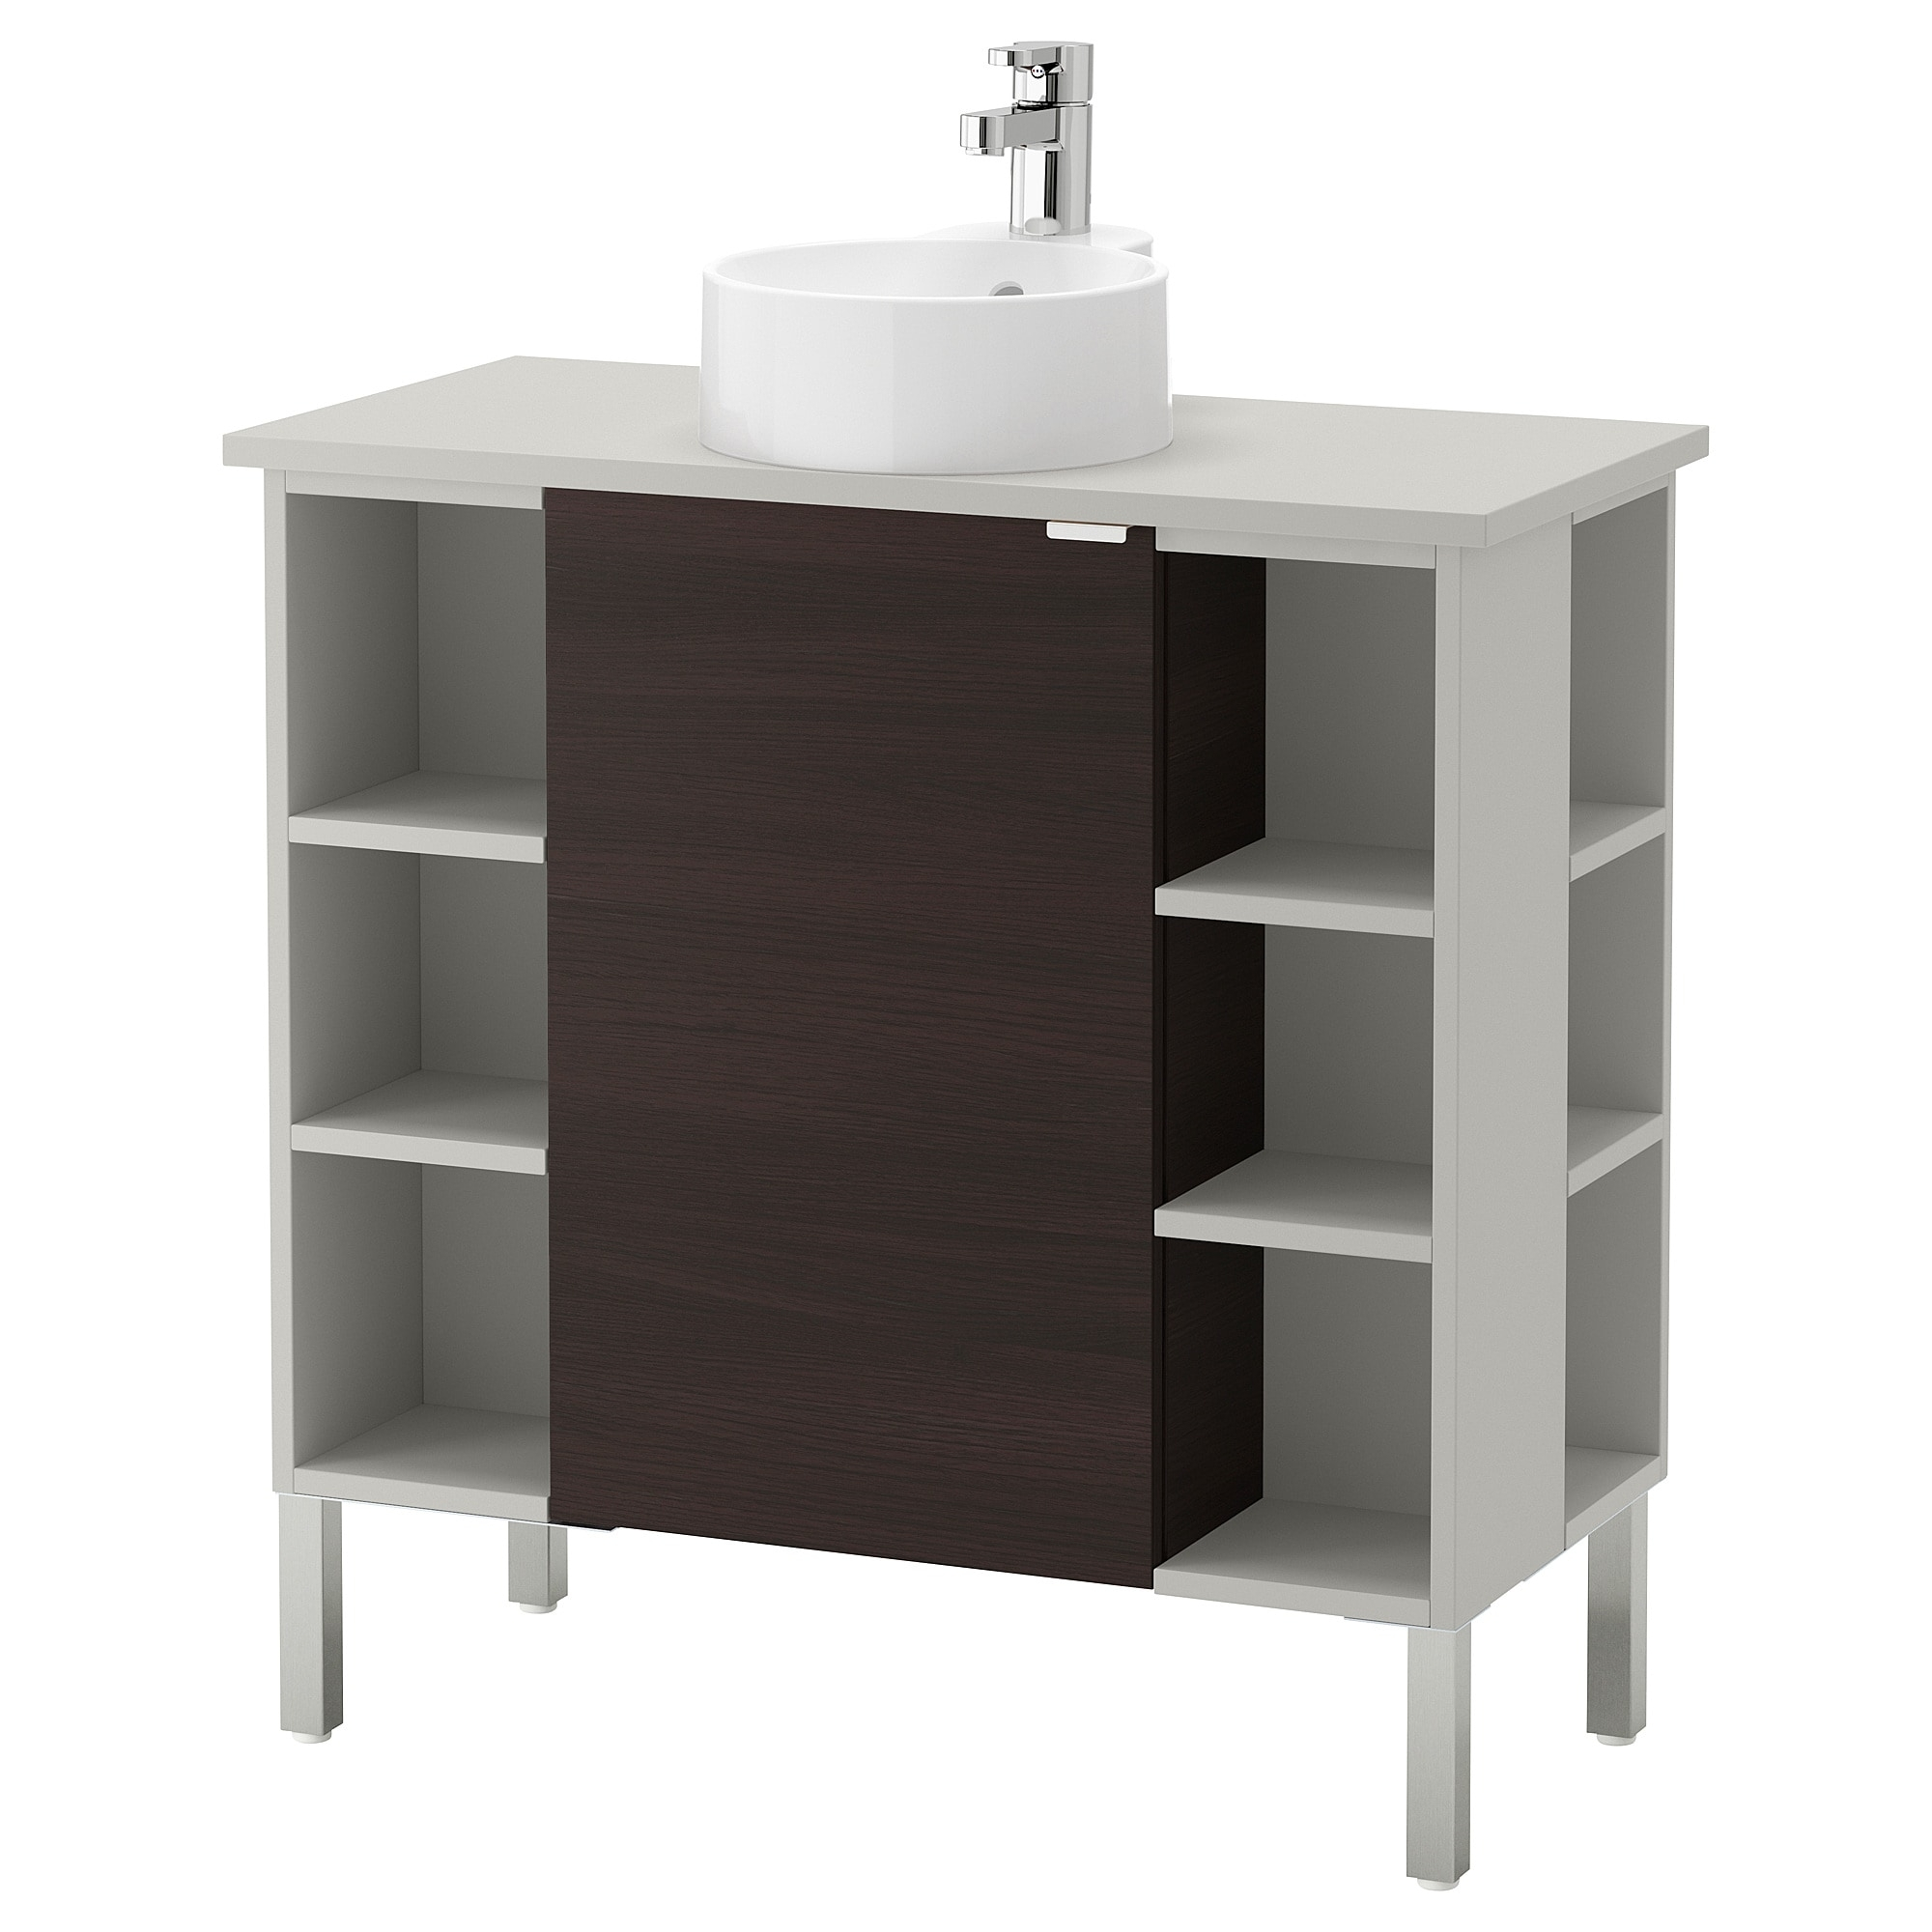 Lillången/viskan / Gutviken Washbasin Cab 1 Door/4 End Unit intended for White Wash 4-Door Galvanized Sideboards (Image 18 of 30)